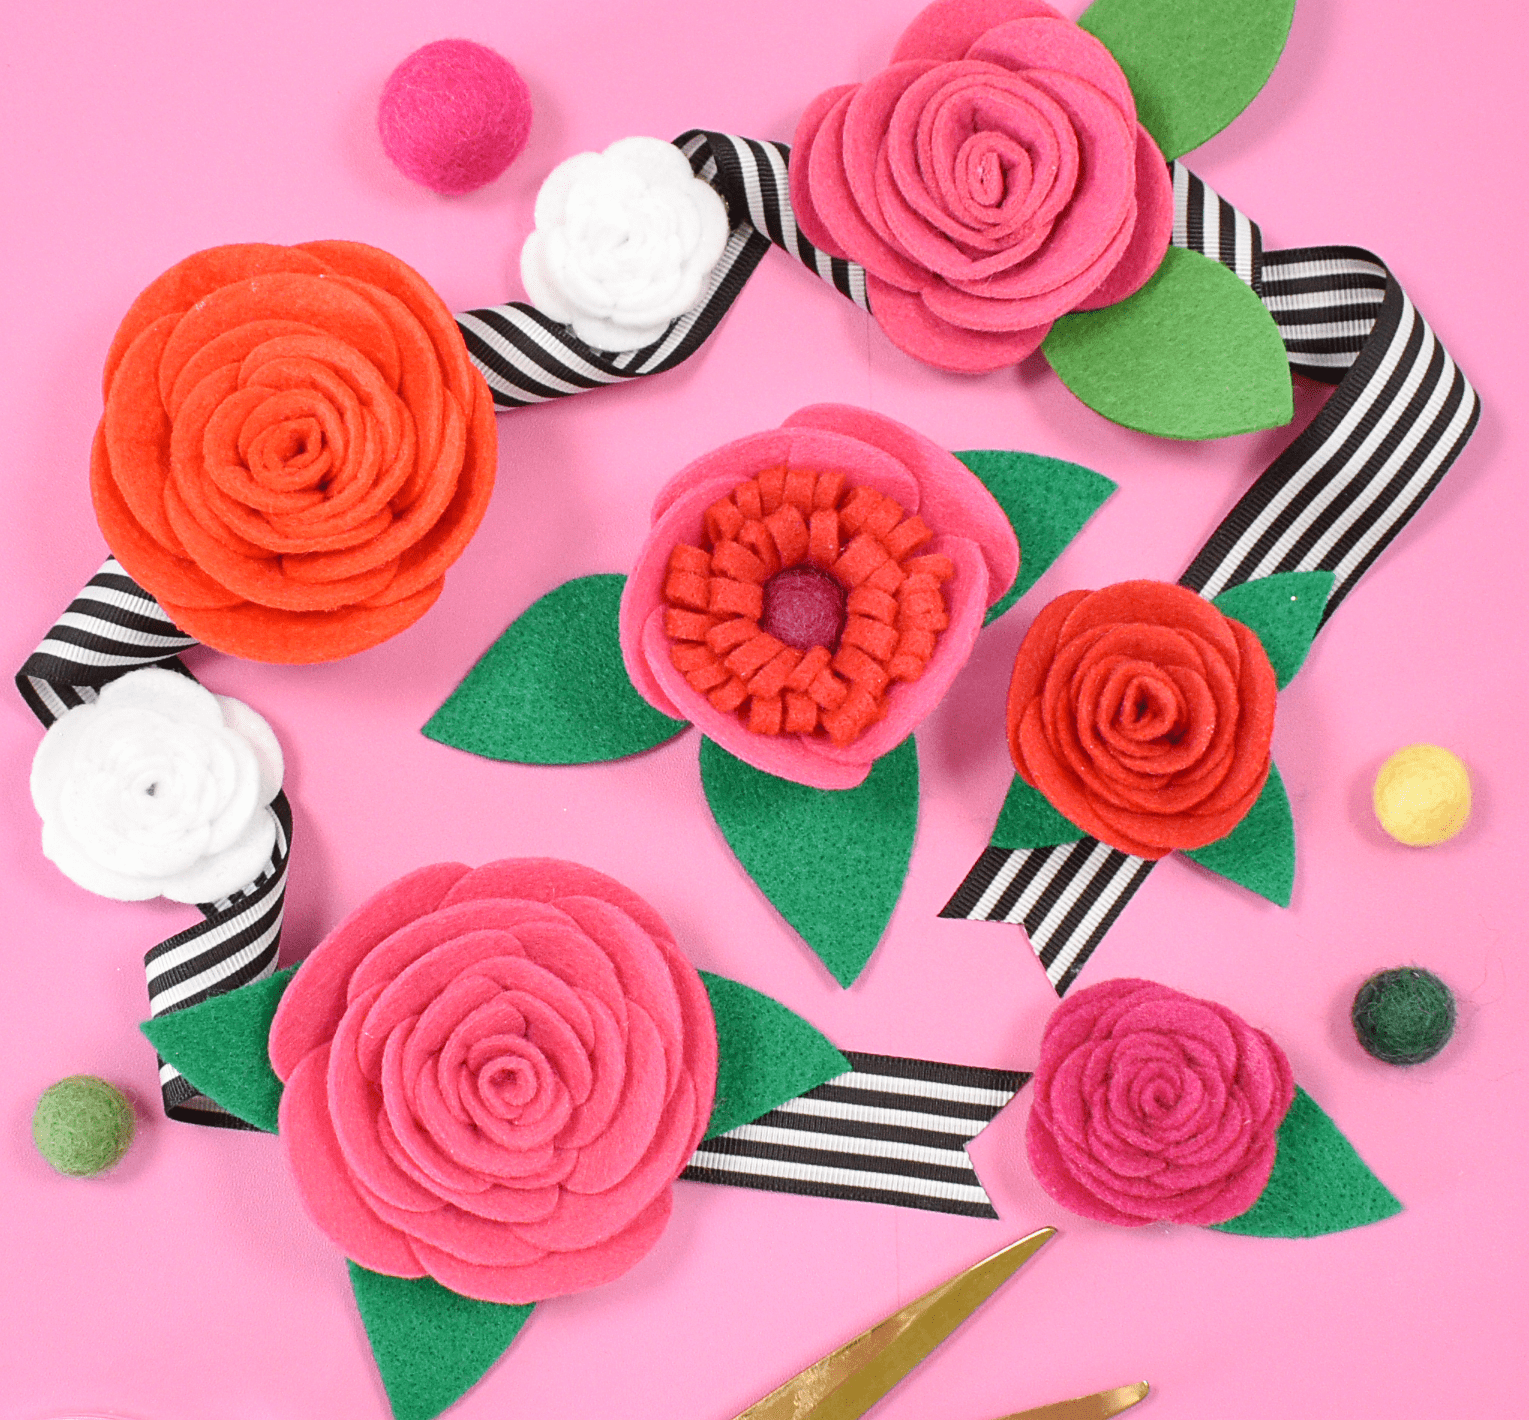 How to Make Easy Felt Roses with Free SVG Files and PDF Printable Templates